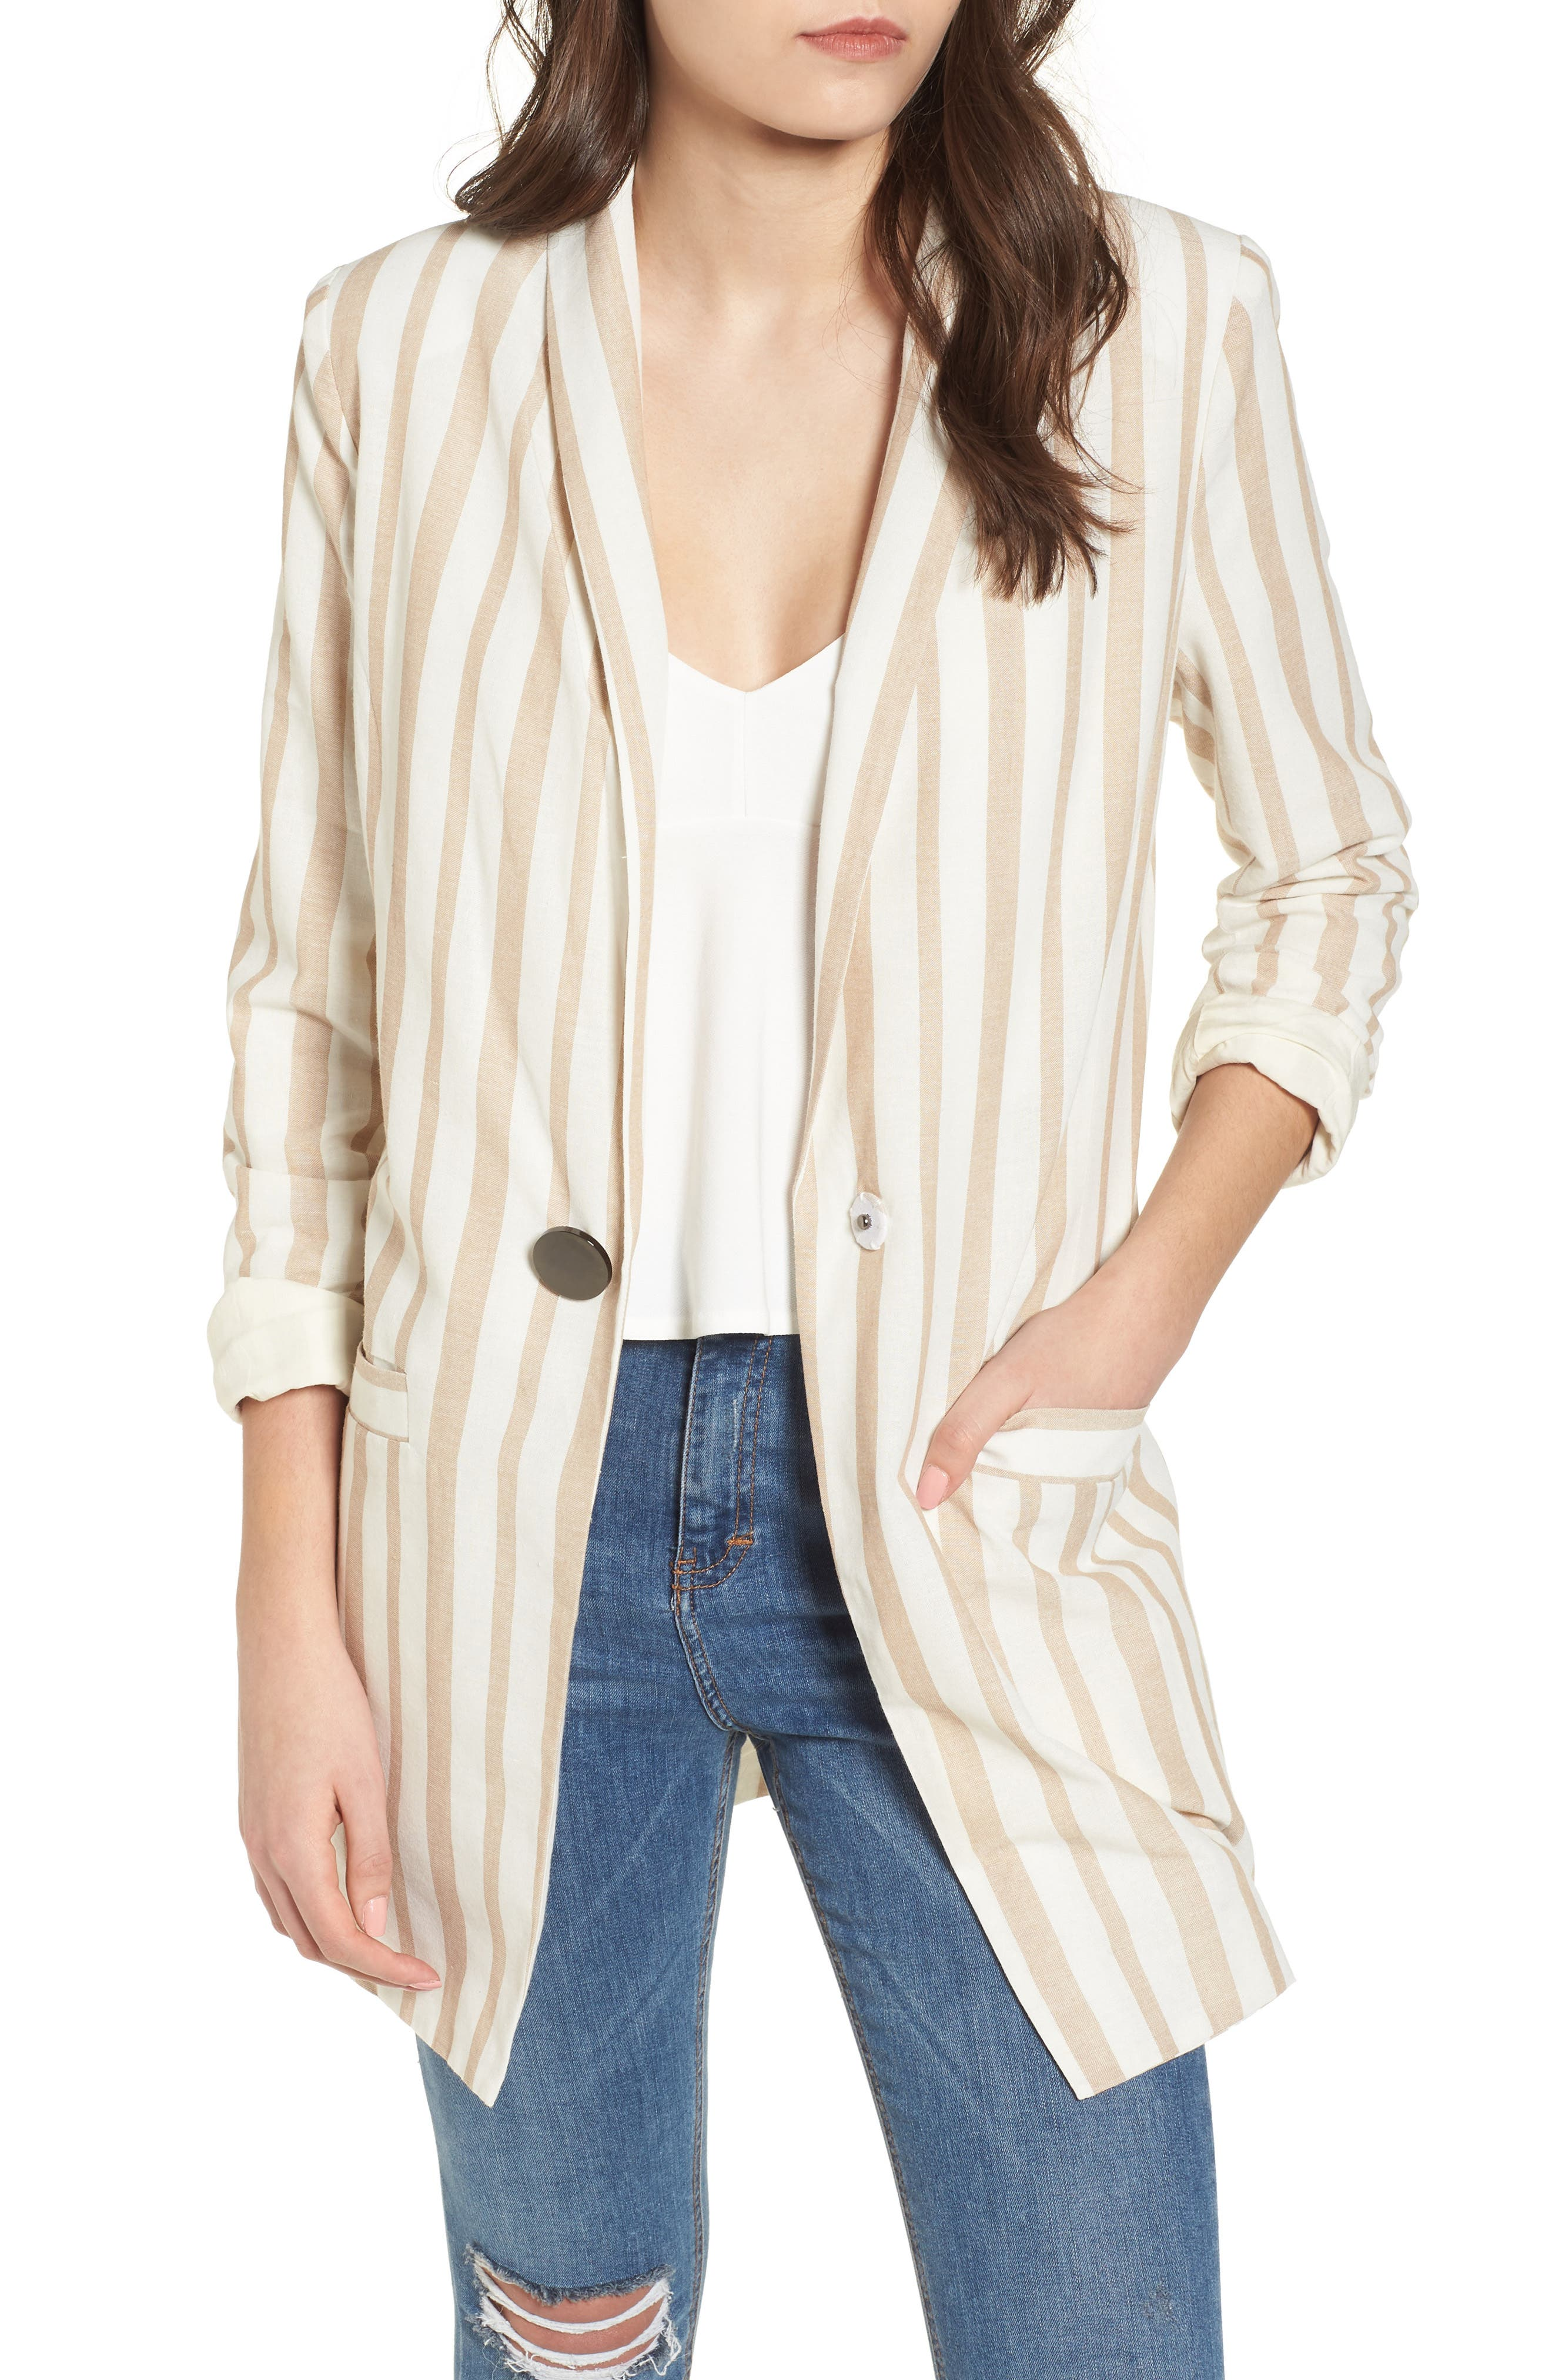 Chriselle x J.O.A. Boyfriend Blazer,                         Main,                         color, Sand Stripe